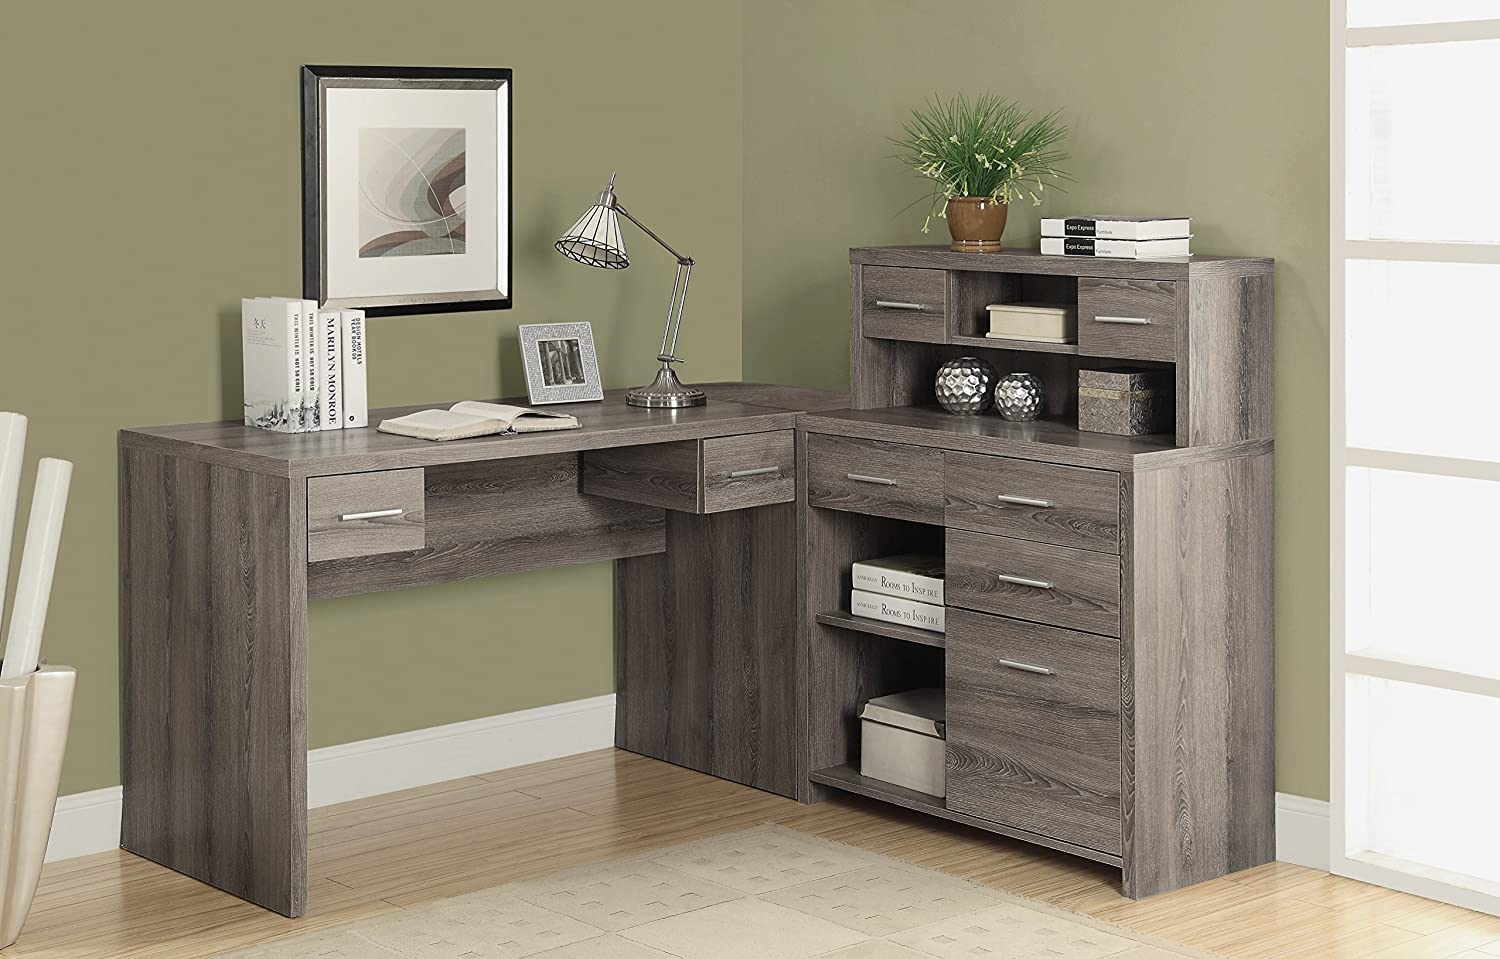 Amazoncom Monarch ReclaimedLook L Shaped Home Office Desk Dark